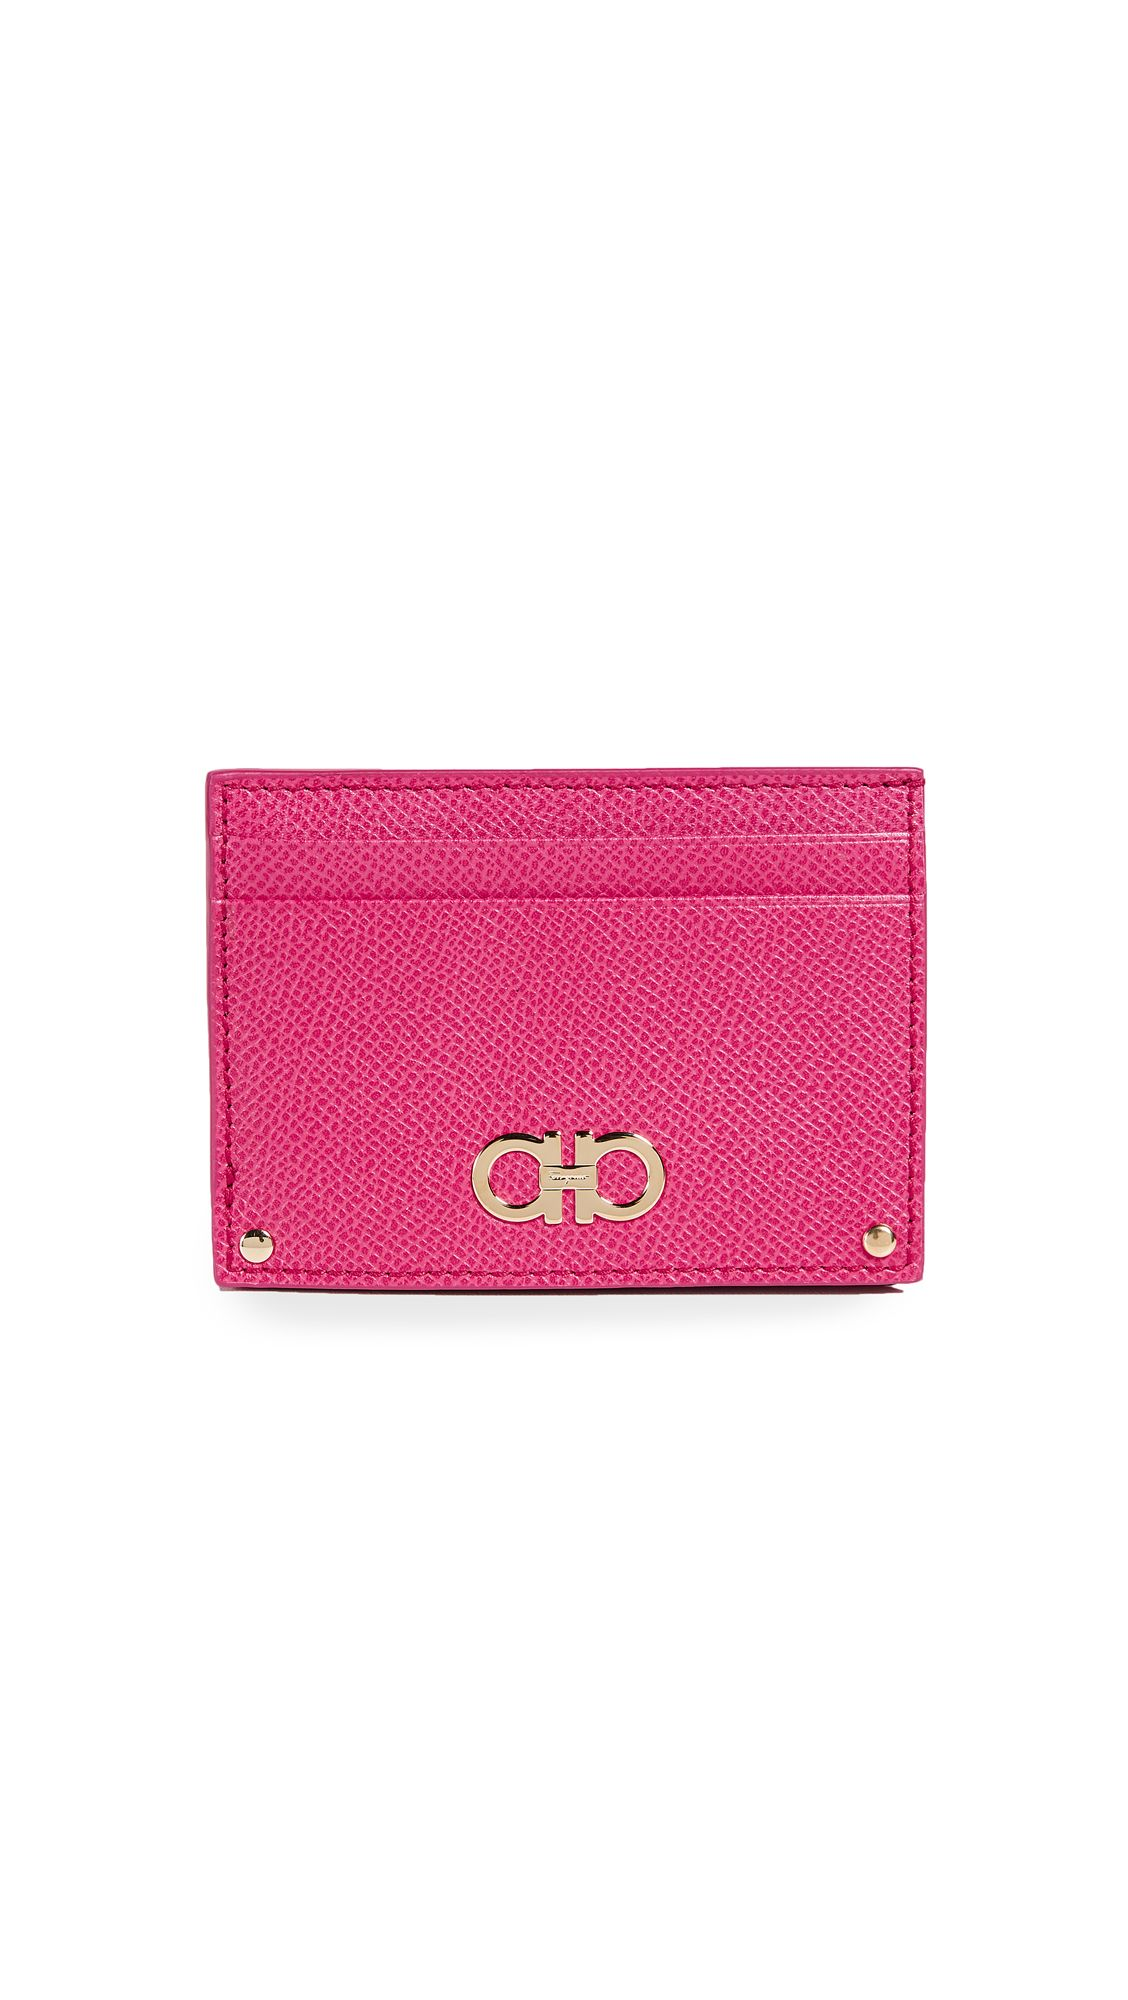 Gancini card holder - Pink & Purple Salvatore Ferragamo CFYh4jh3